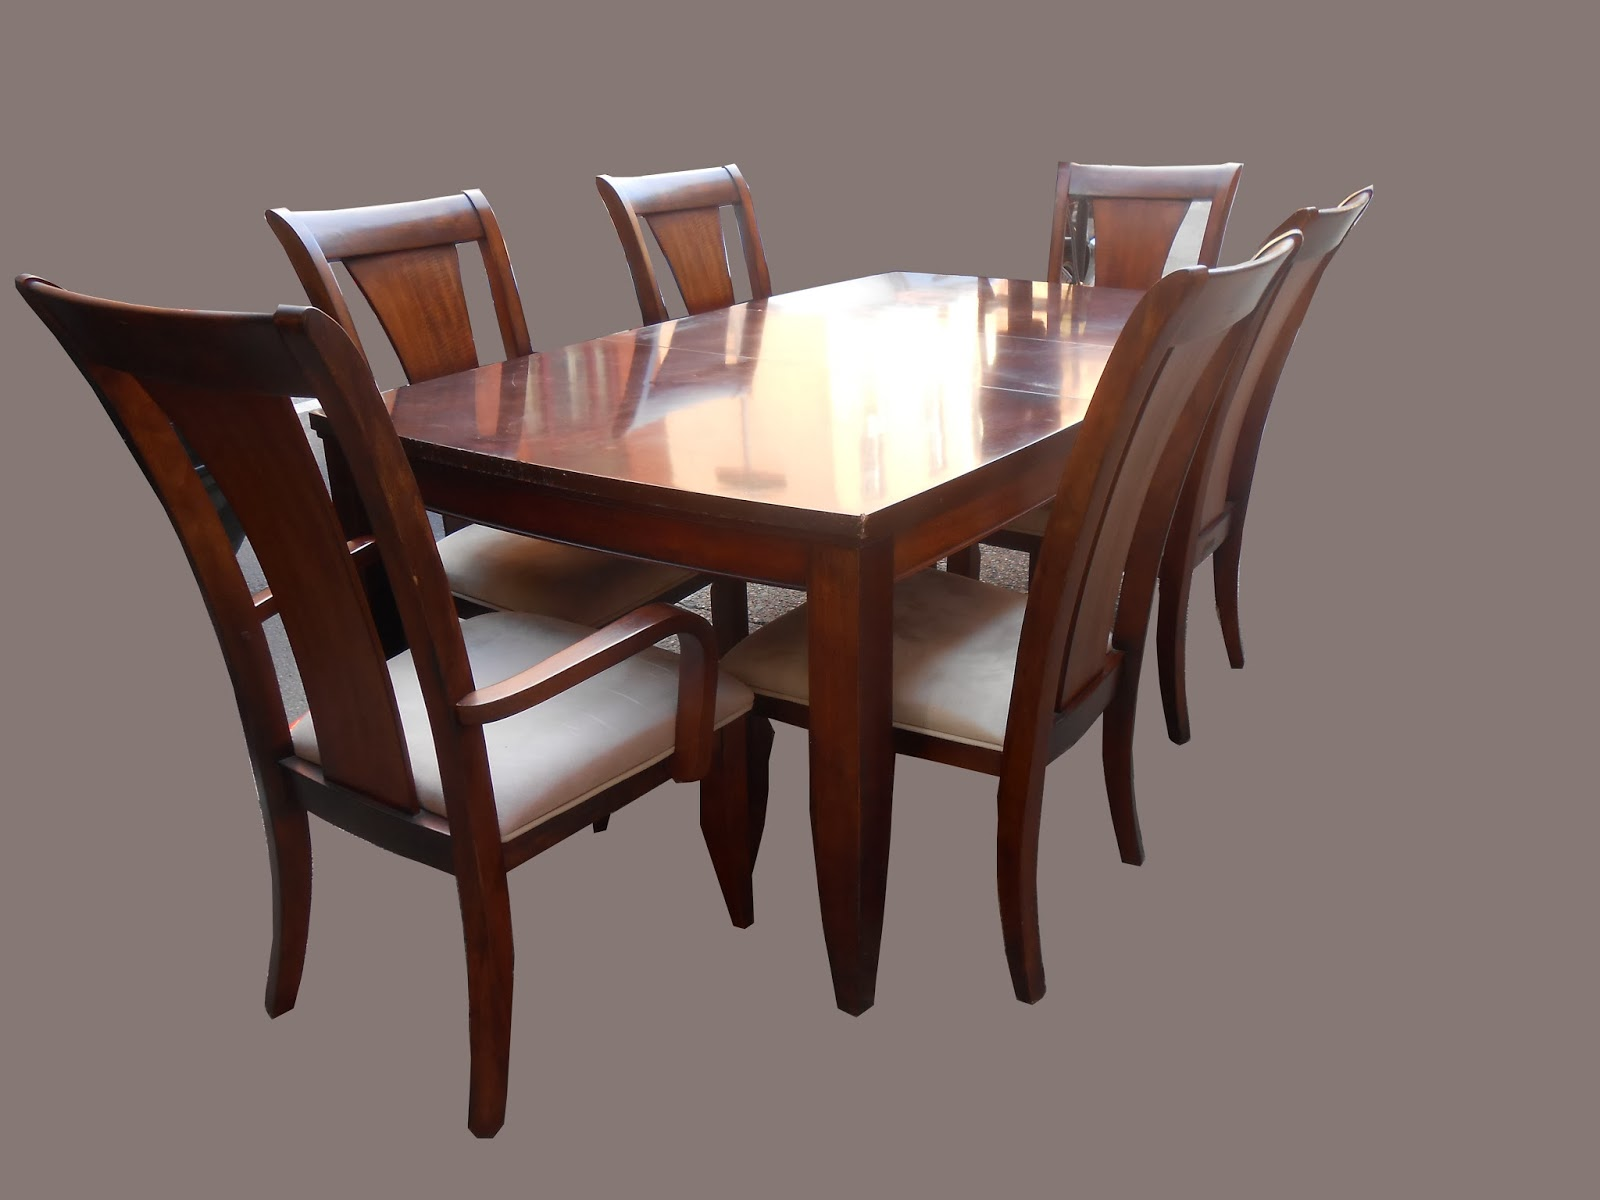 dining room furniture designs. Dining Table And 6 Chairs Room Furniture Designs